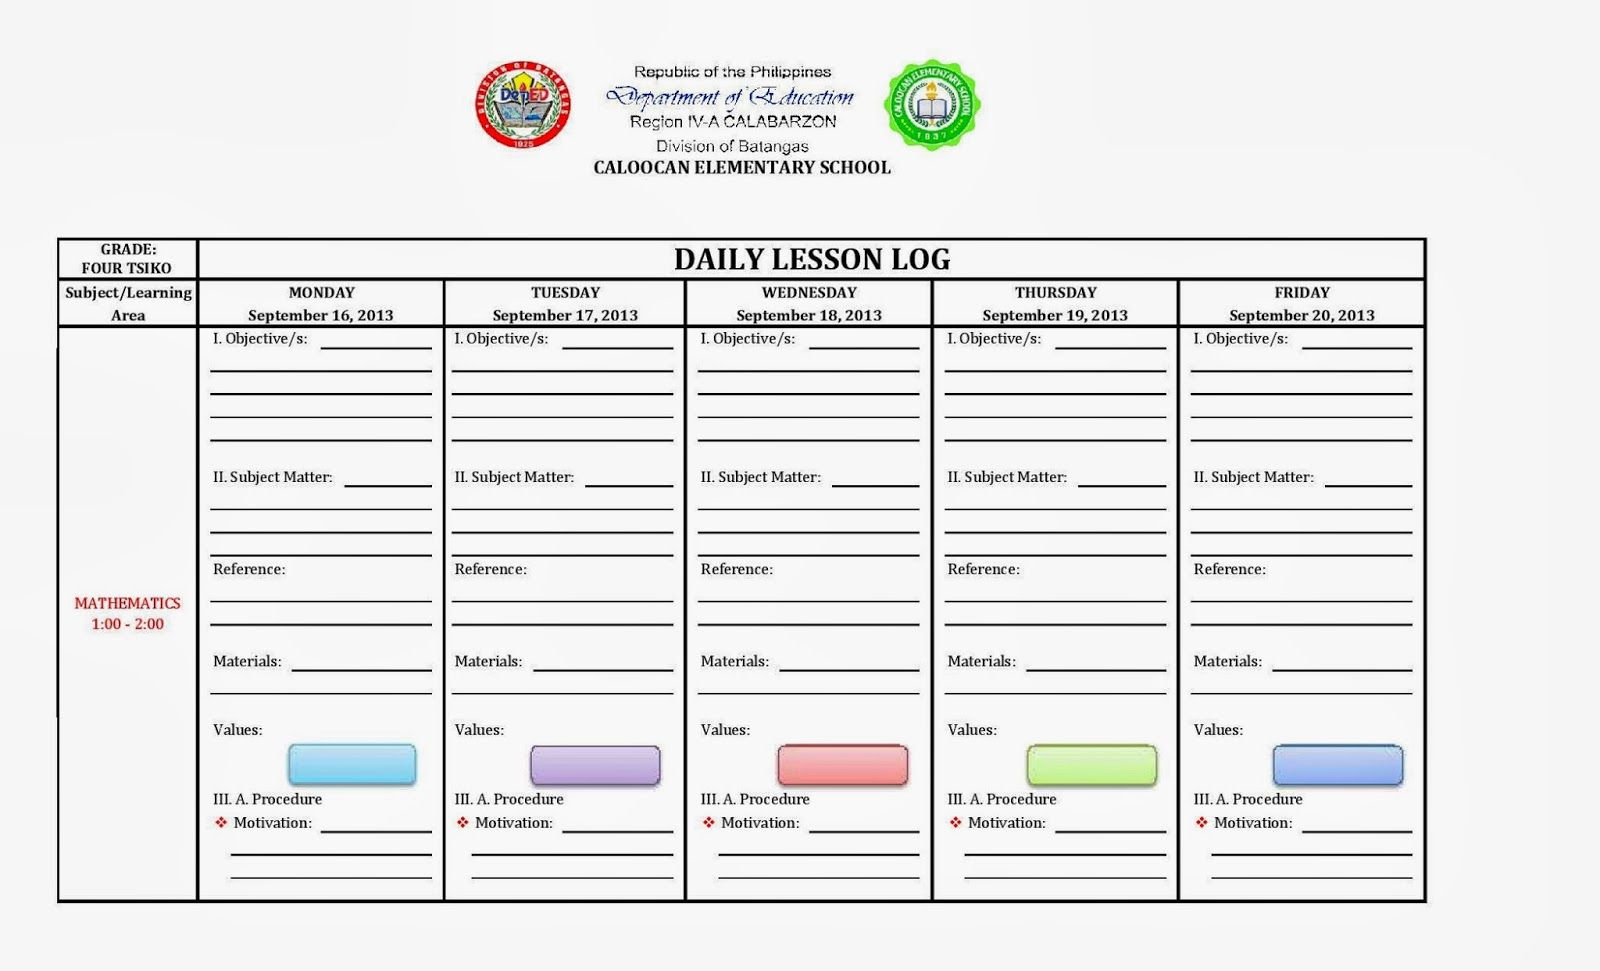 Daily Lesson Log Format